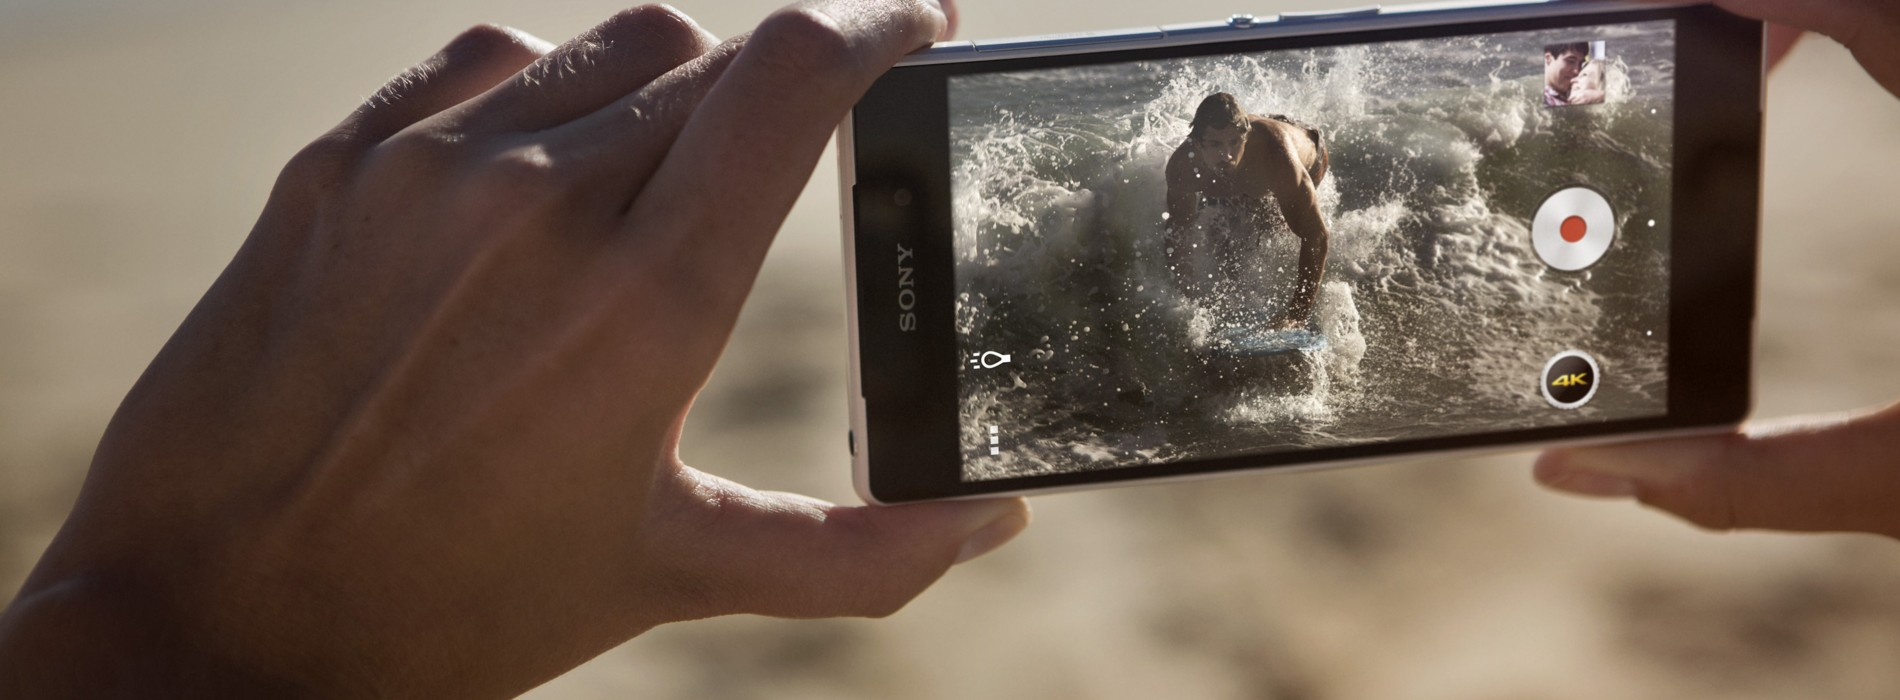 Sony Xperia Z2 available for UK pre-order April 11